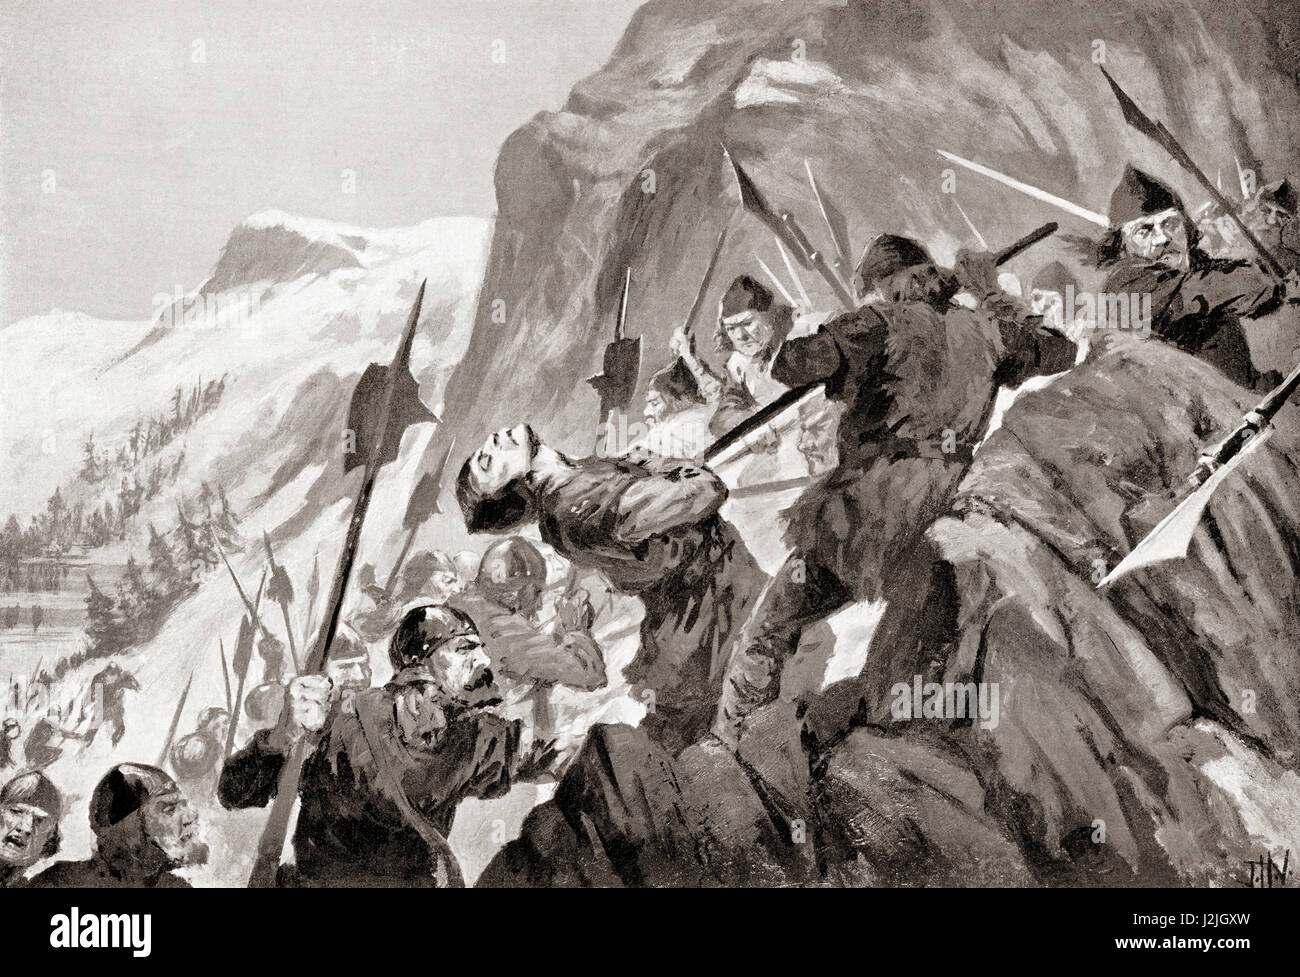 The Battle of Morgarten, Morgarten Pass, Switzerland, 15 November 1315, between the Swiss Confederacy and Austrian - Stock Image